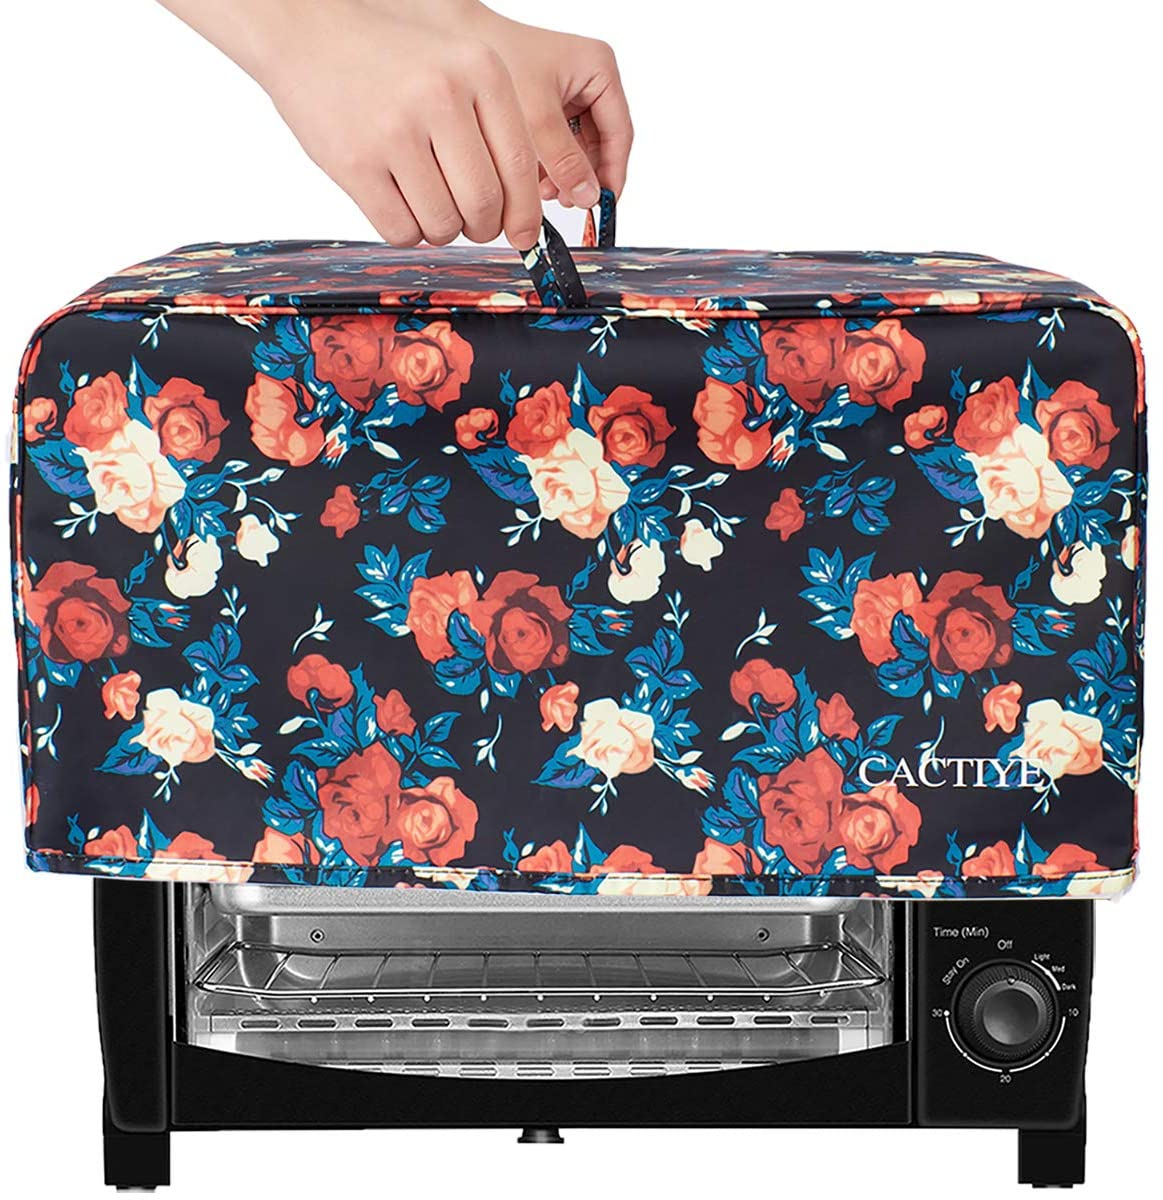 CACTIYE Toaster Oven Dust Cover with Accessory Pockets Compatible with Hamilton Beach 6 Slice of Toaster Oven (floral)